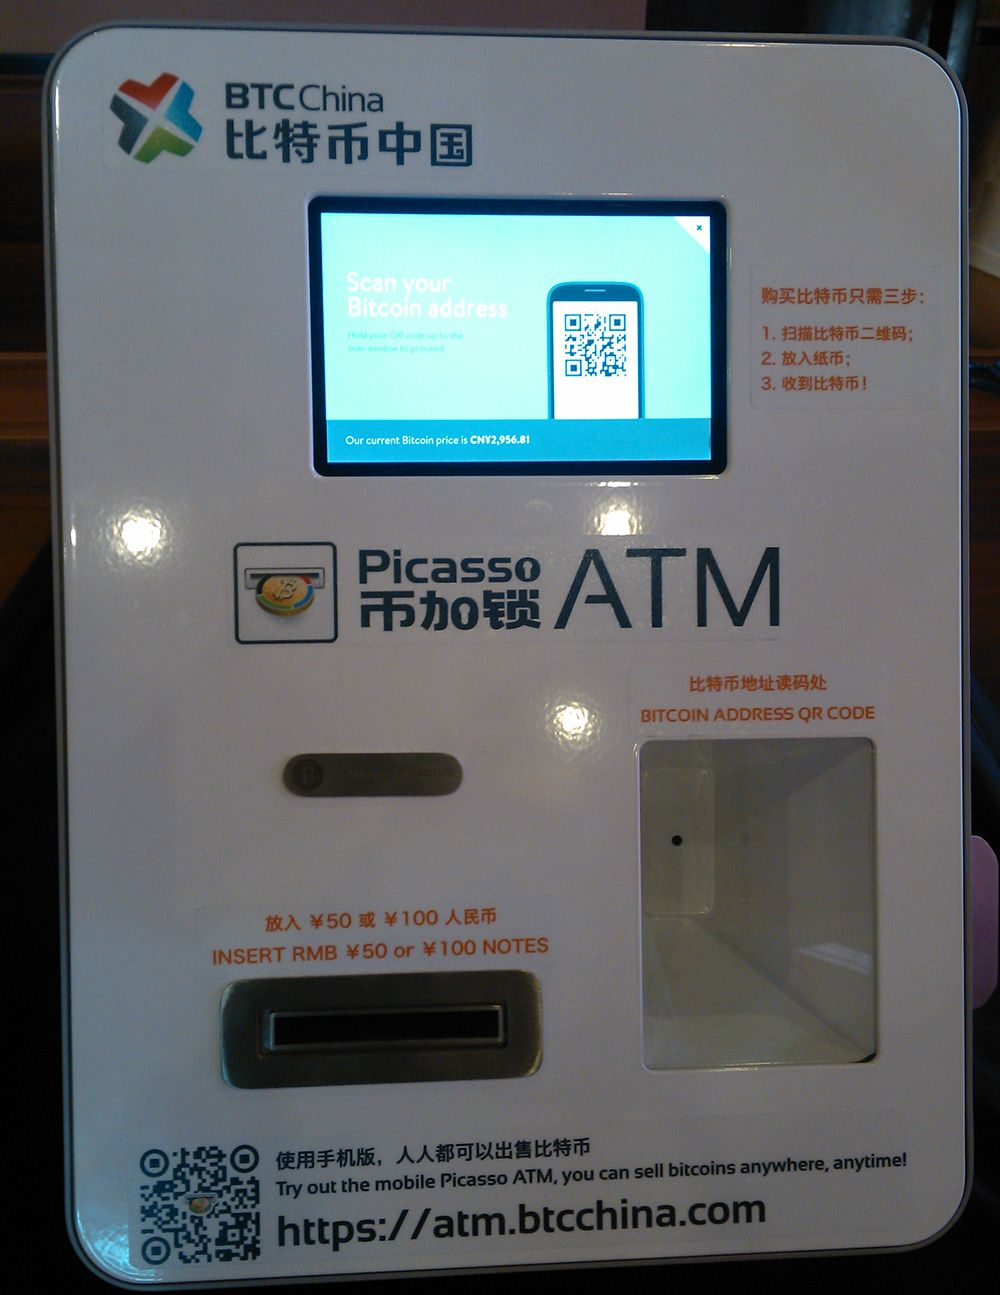 Scan QR code on Chinese bitcoin ATM